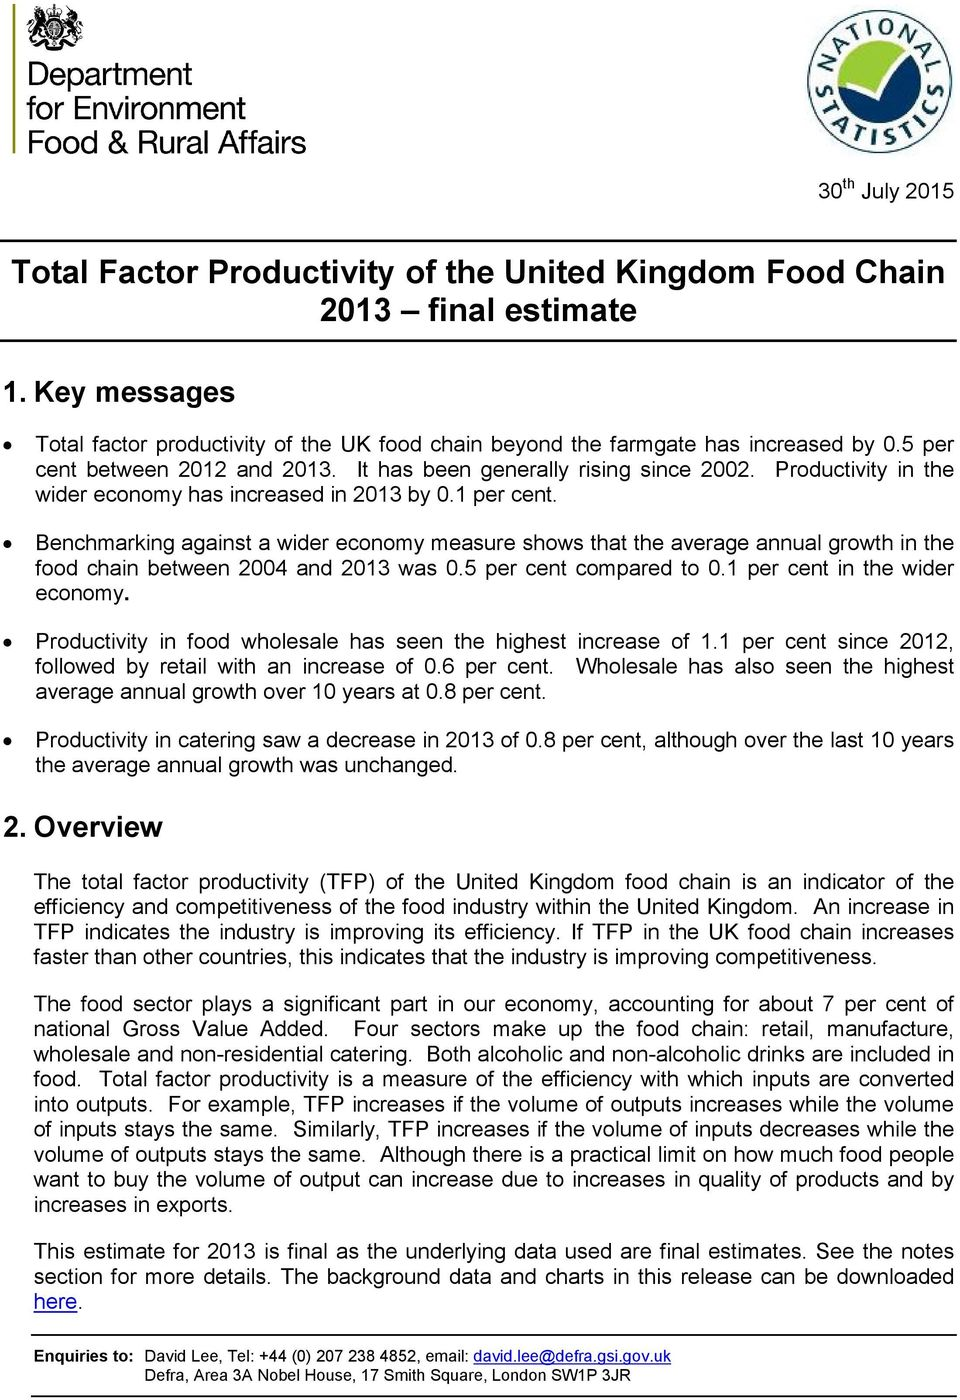 Benchmarking against a wider economy measure shows that the average annual growth in the food chain between 2004 and 2013 was 0.5 per cent compared to 0.1 per cent in the wider economy.